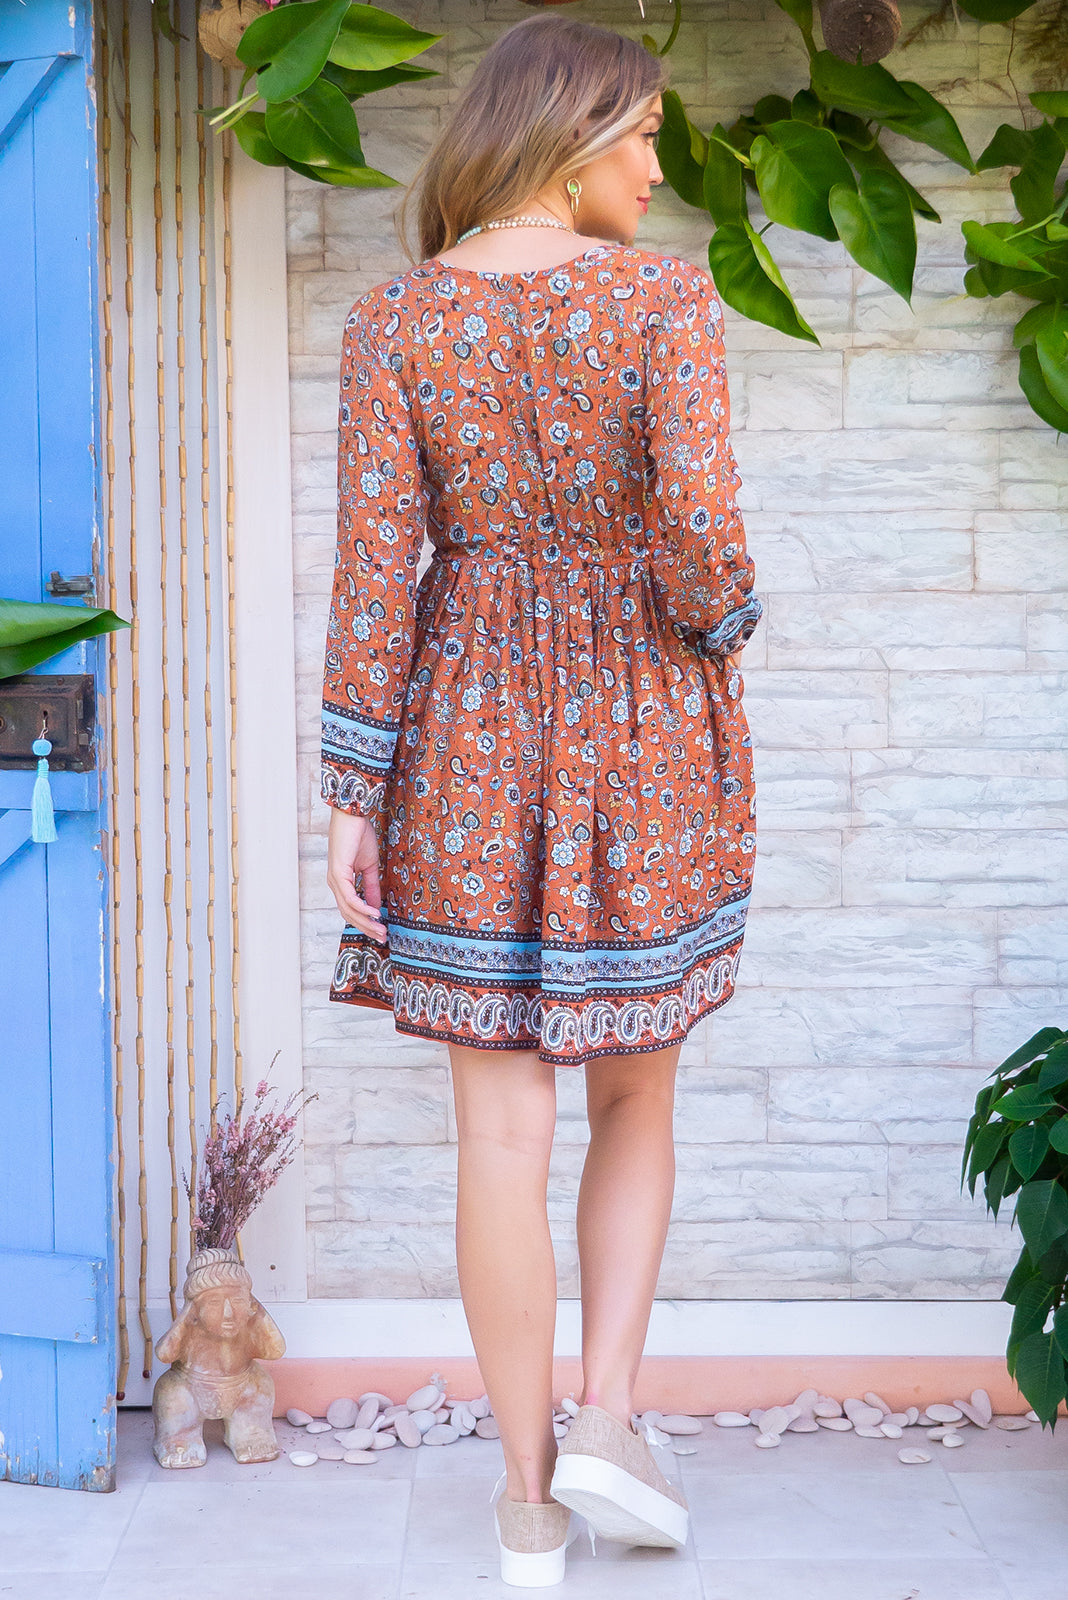 Jennifer Jaffa Ginger Dress with a button front, long sleeve with elastic at the wrist, side pockets and a full skirt in a soft rusty and turquoise bohemian border print on a 100% woven rayon chic and effortless style